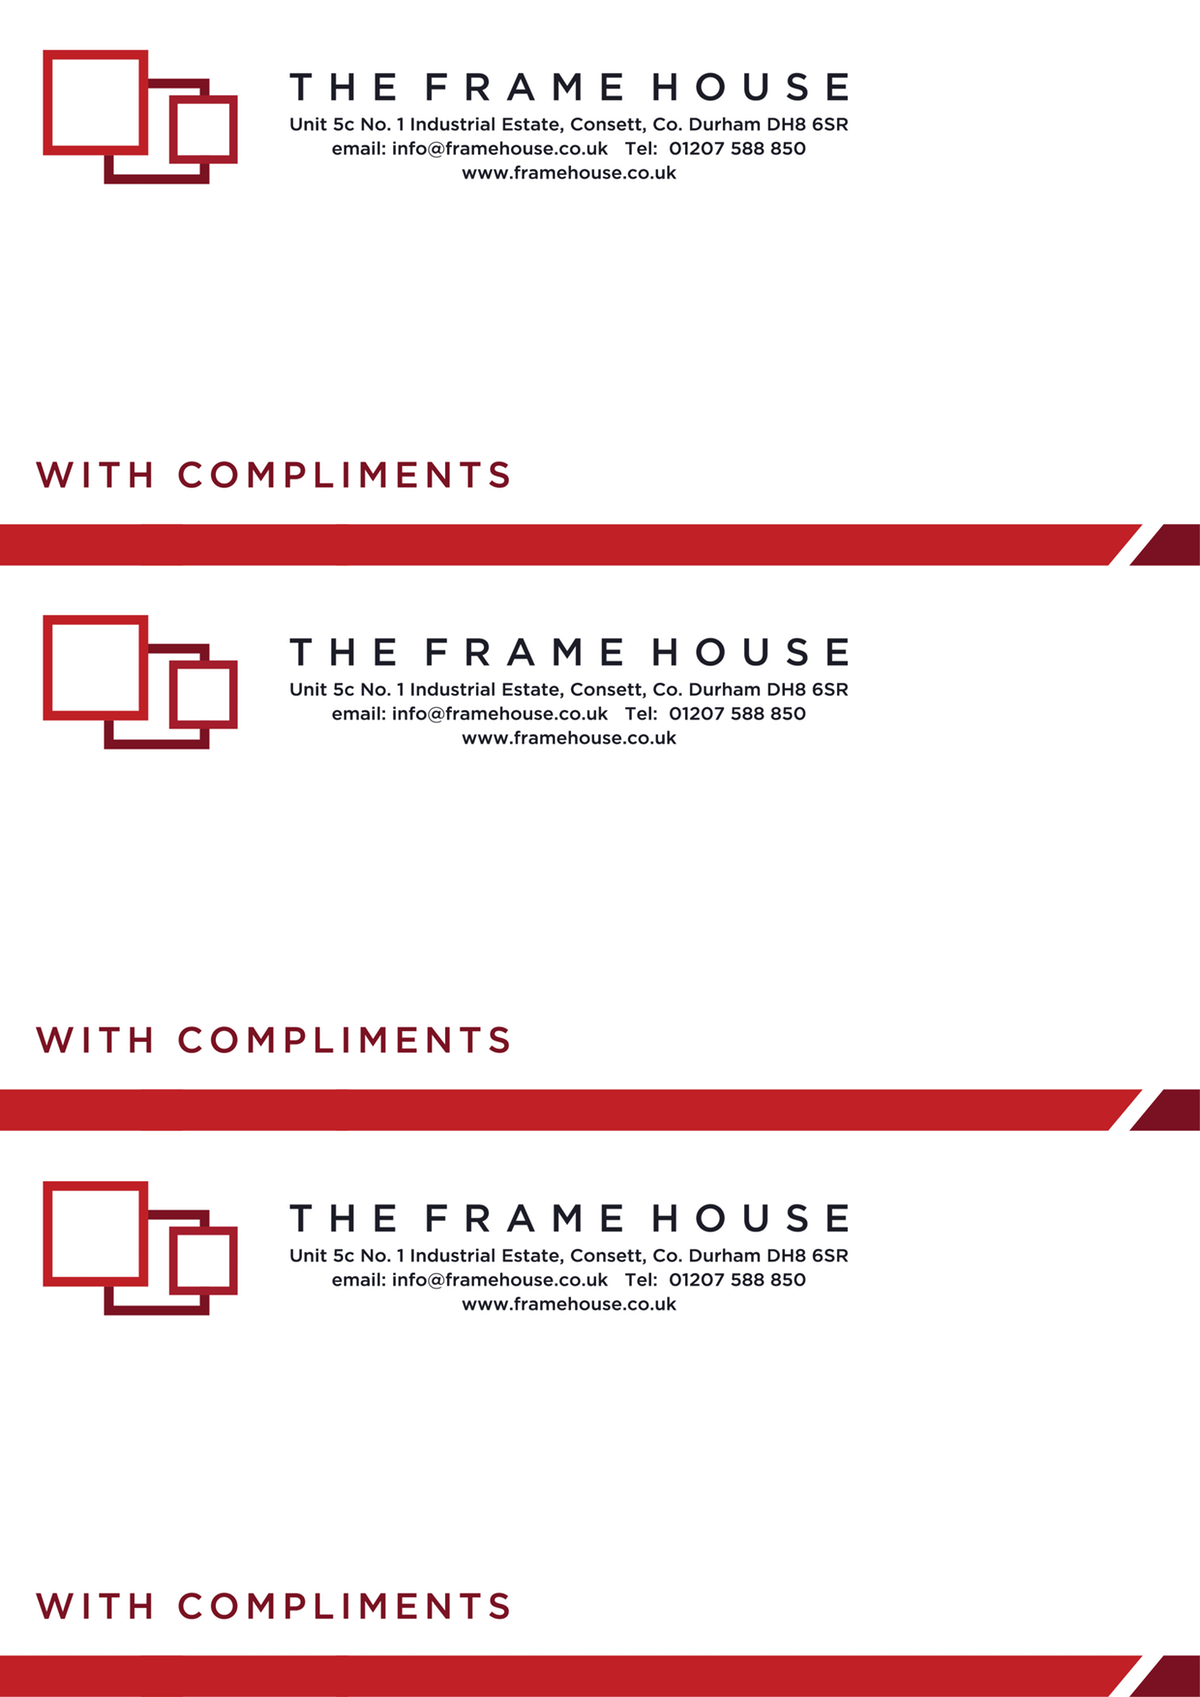 Update to Business card